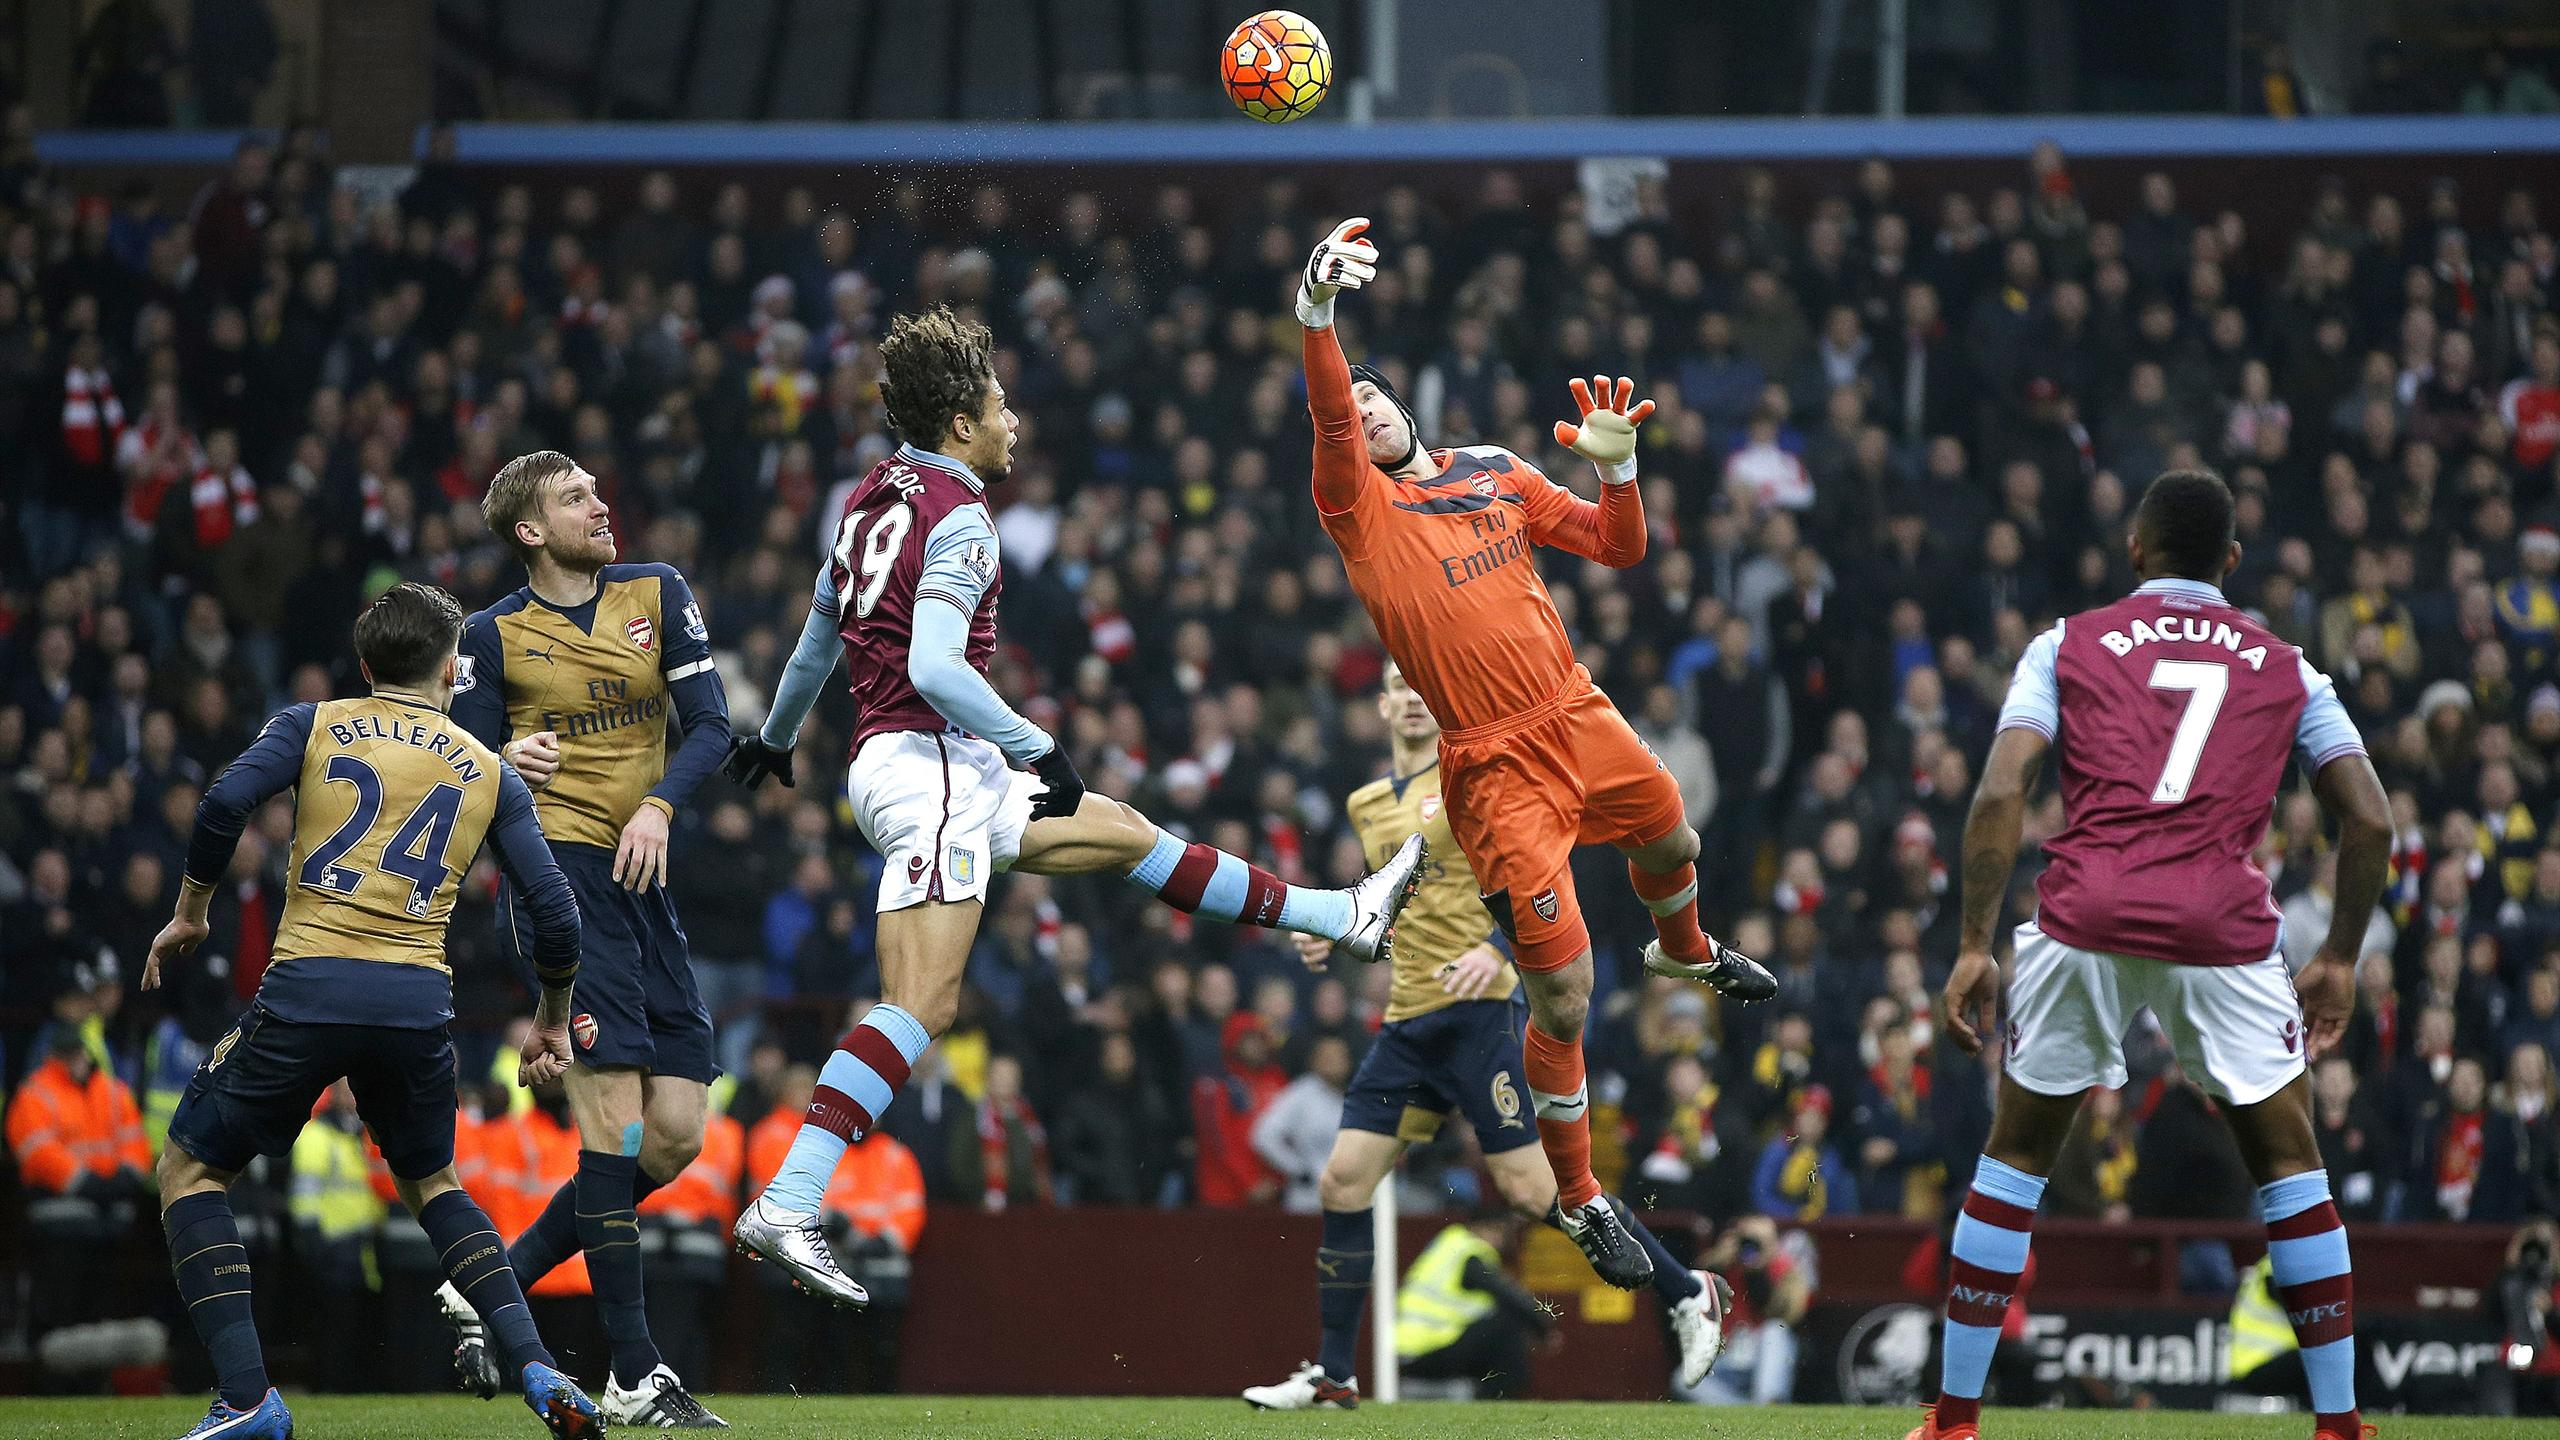 Petr Cech in action for Arsenal against Aston Villa